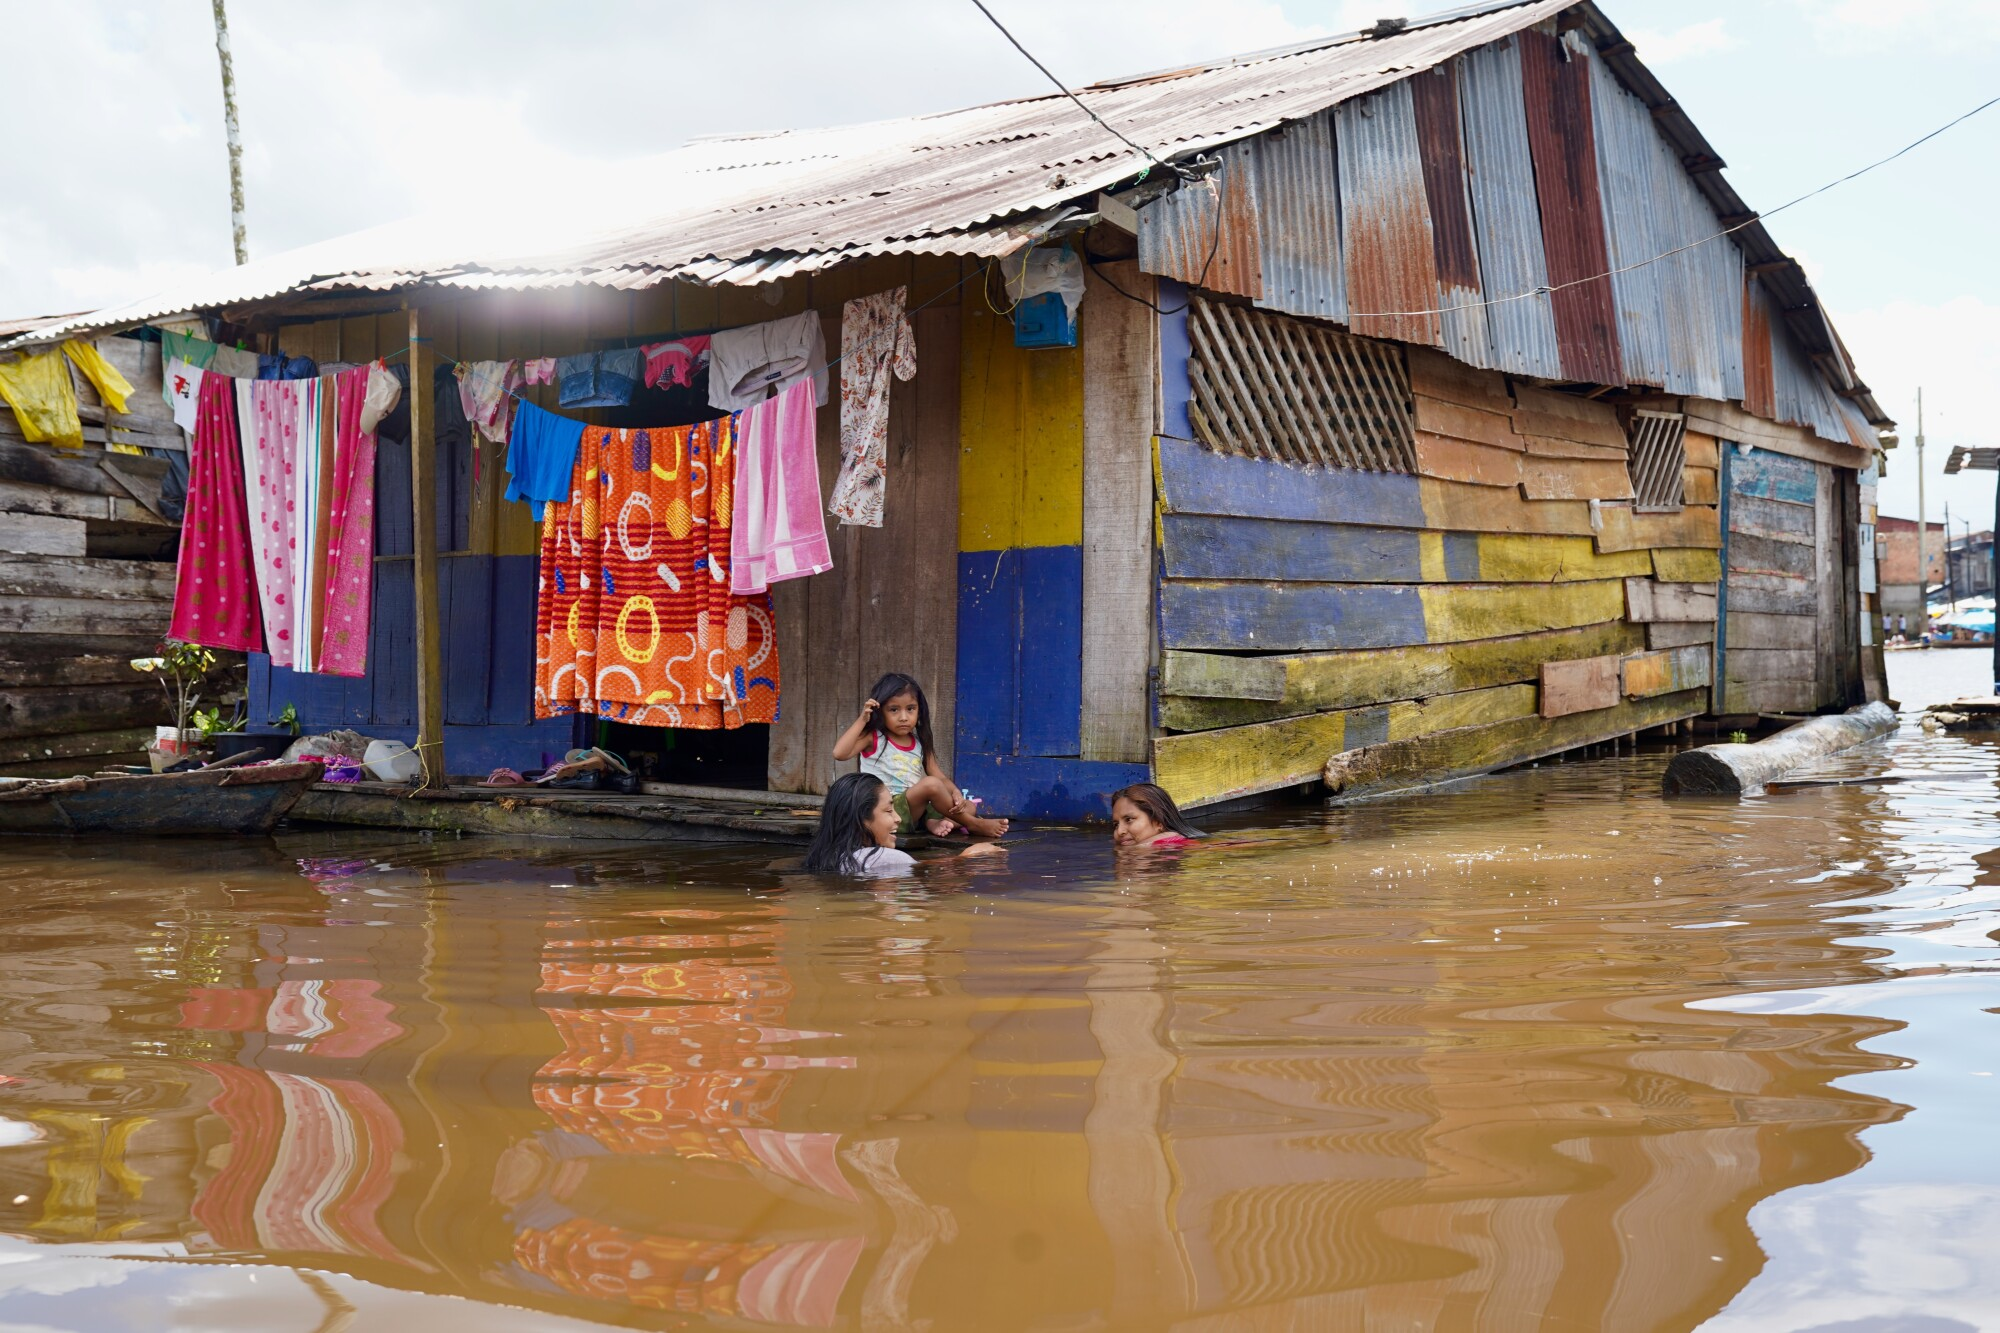 A home in the port district of Belen in Iquitos, Peru.